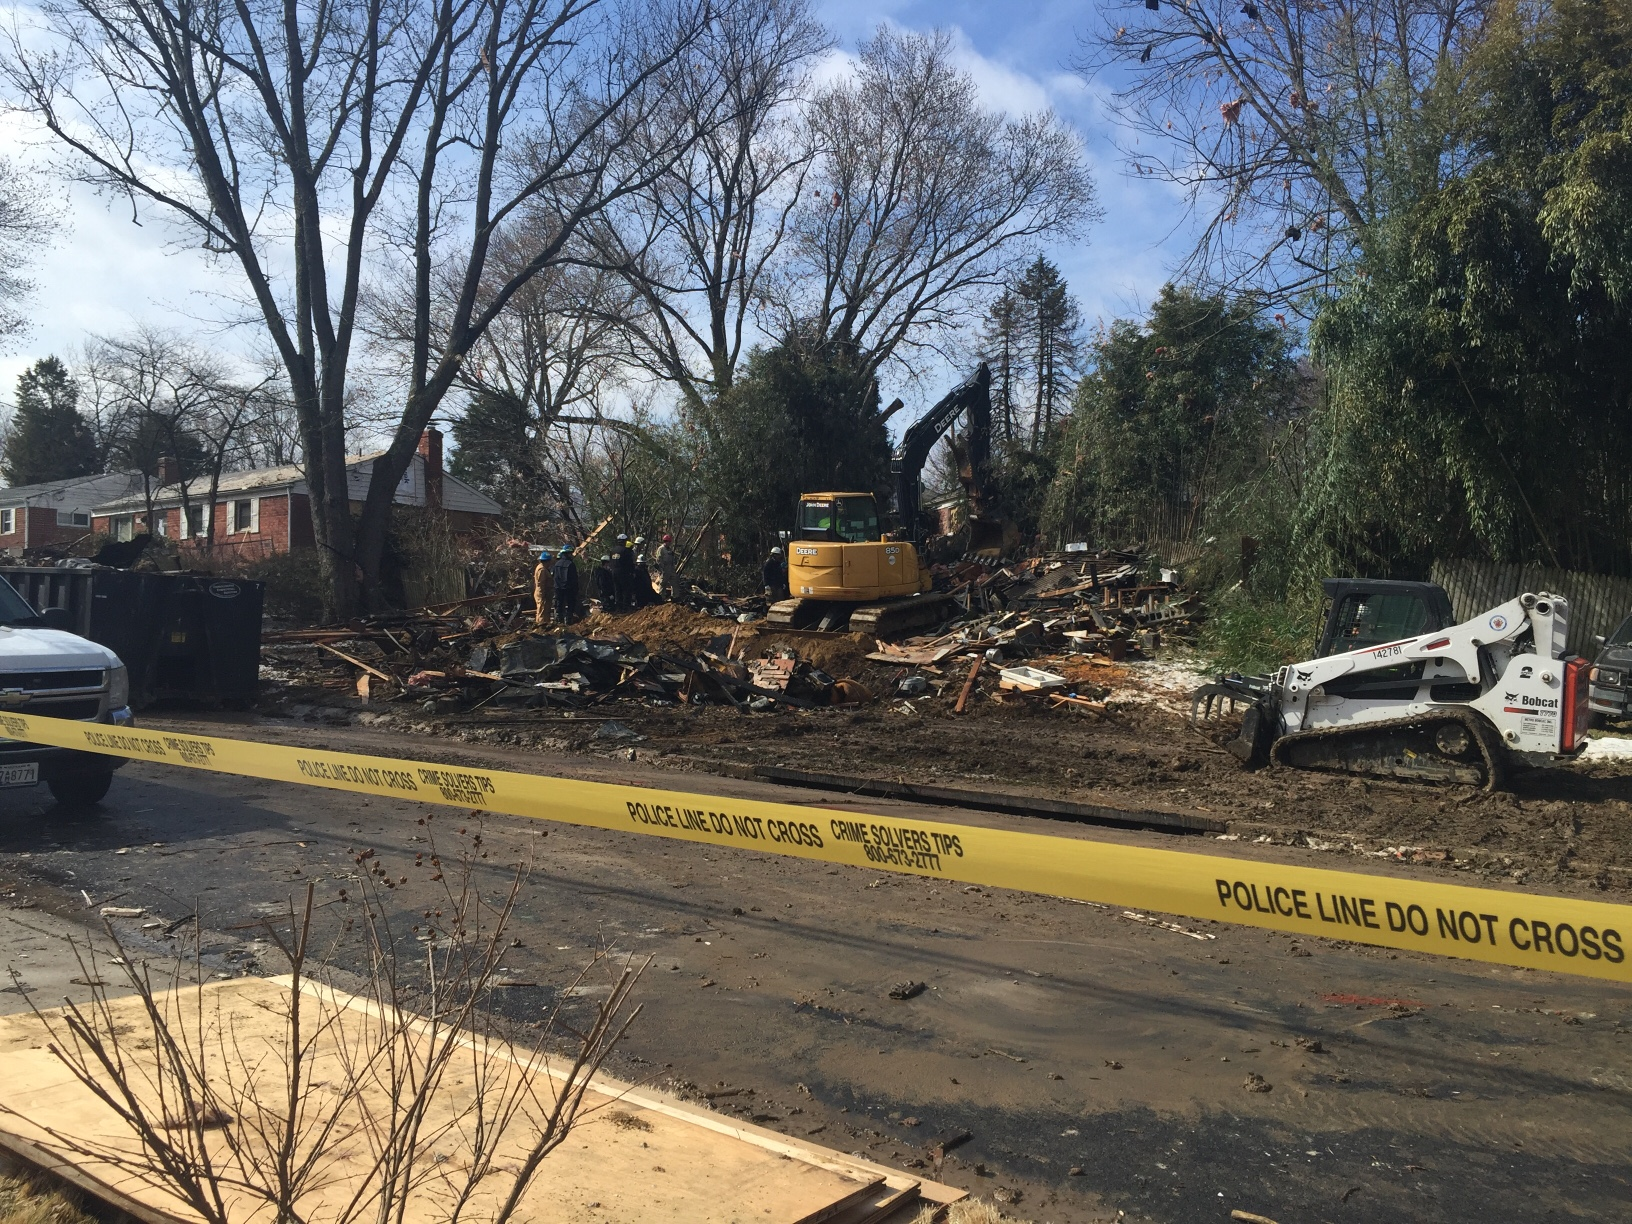 Caution tape surrounds the scene where a home exploded Friday in Rockville, Md. (WTOP/Dennis Foley)